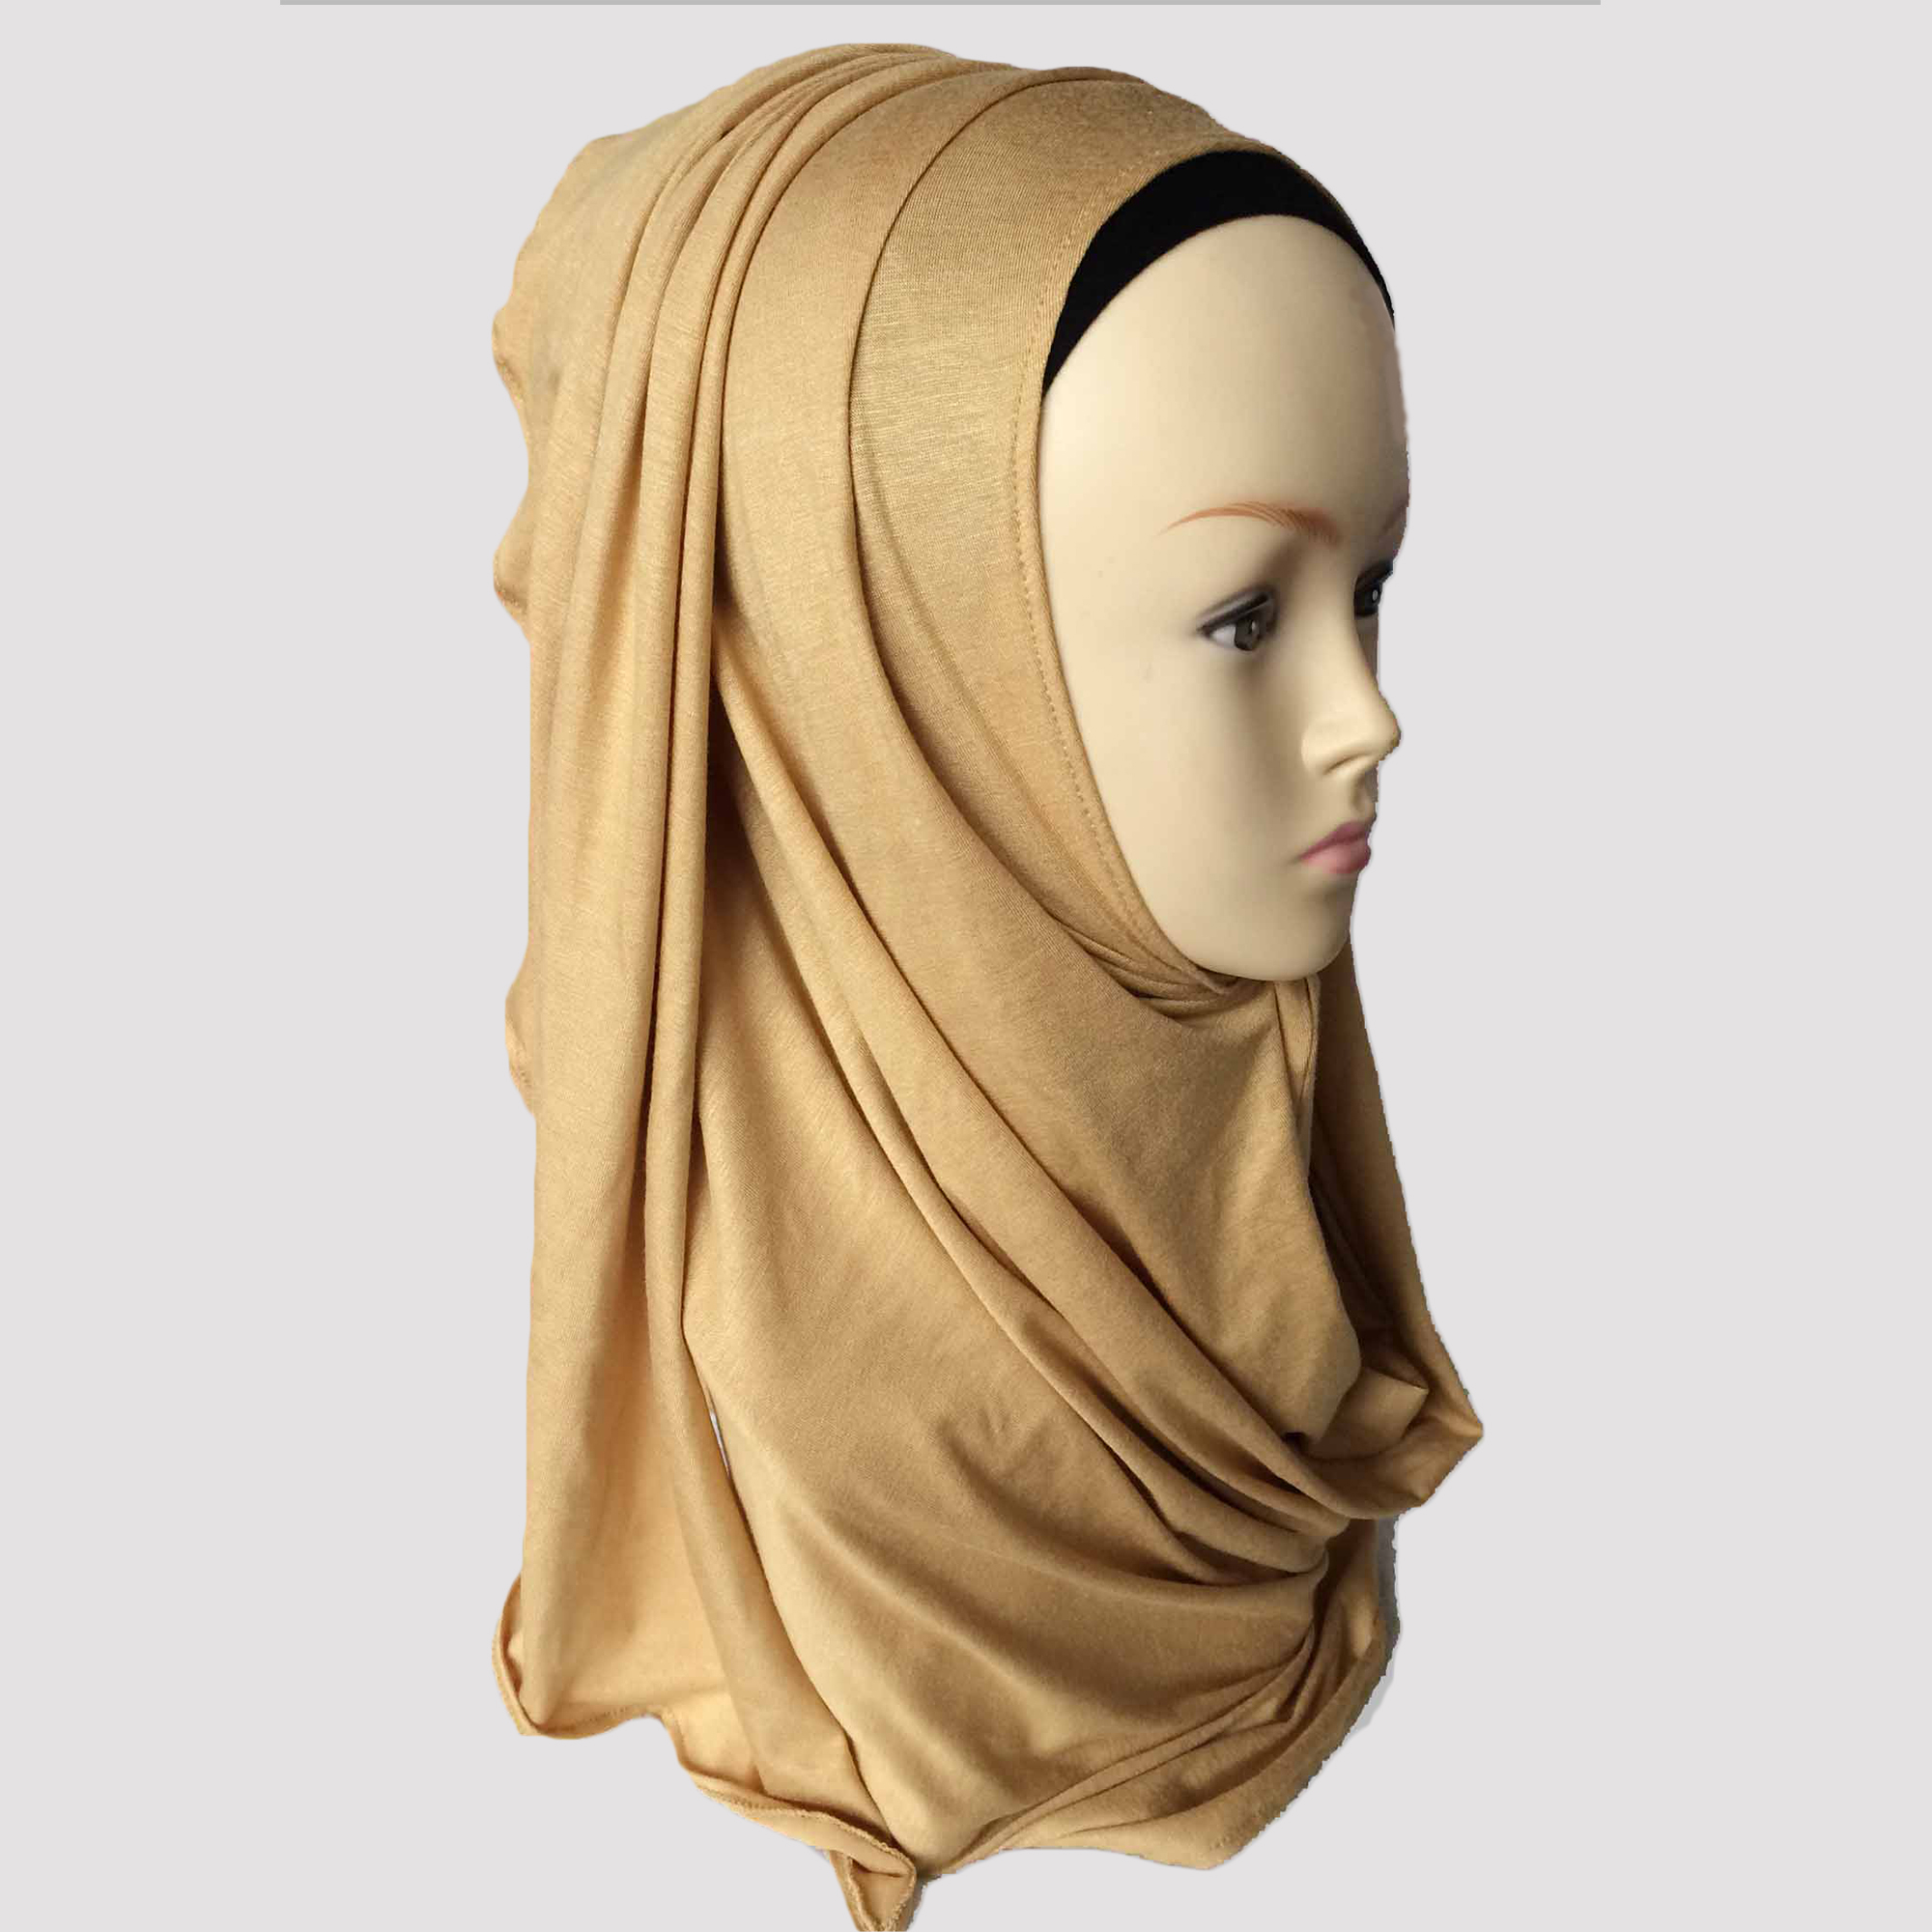 New design high quality plain color hijab big size long cover jersey shawls headscarf for ladies any seasons